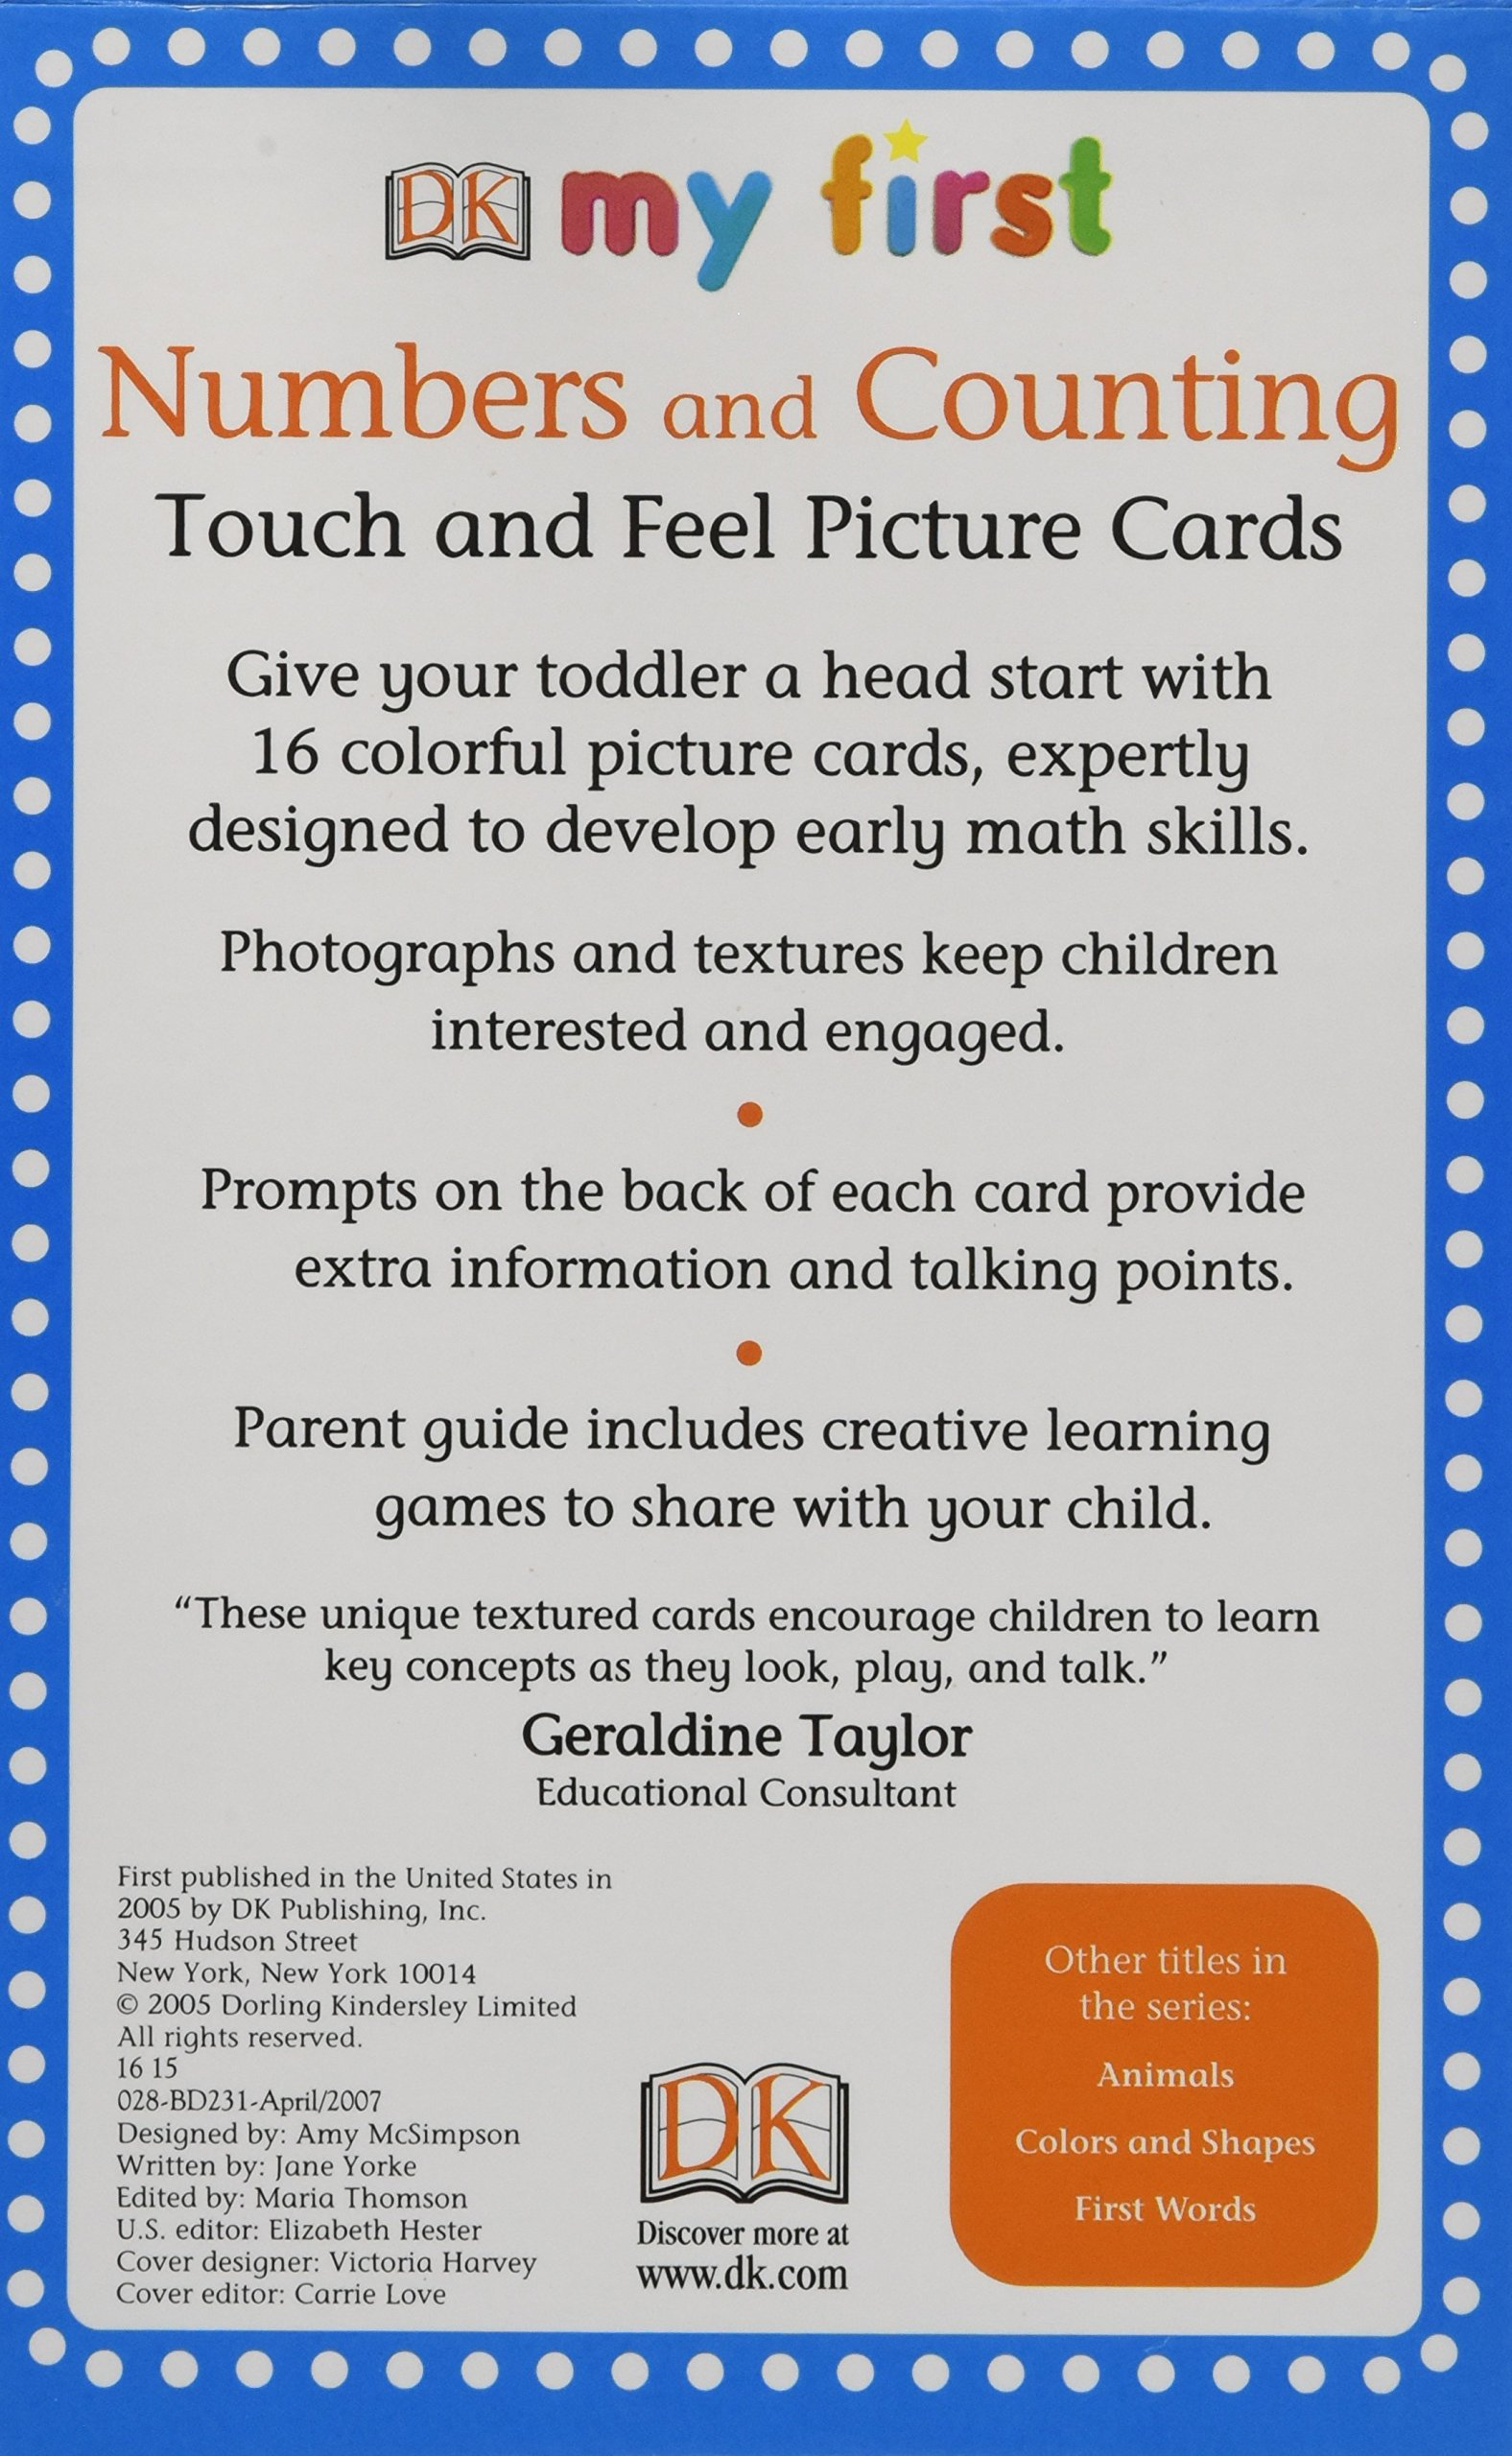 My First Touch & Feel Picture Cards: Numbers & Counting (MY 1ST T&F PICTURE CARDS) by DK Preschool (Image #2)